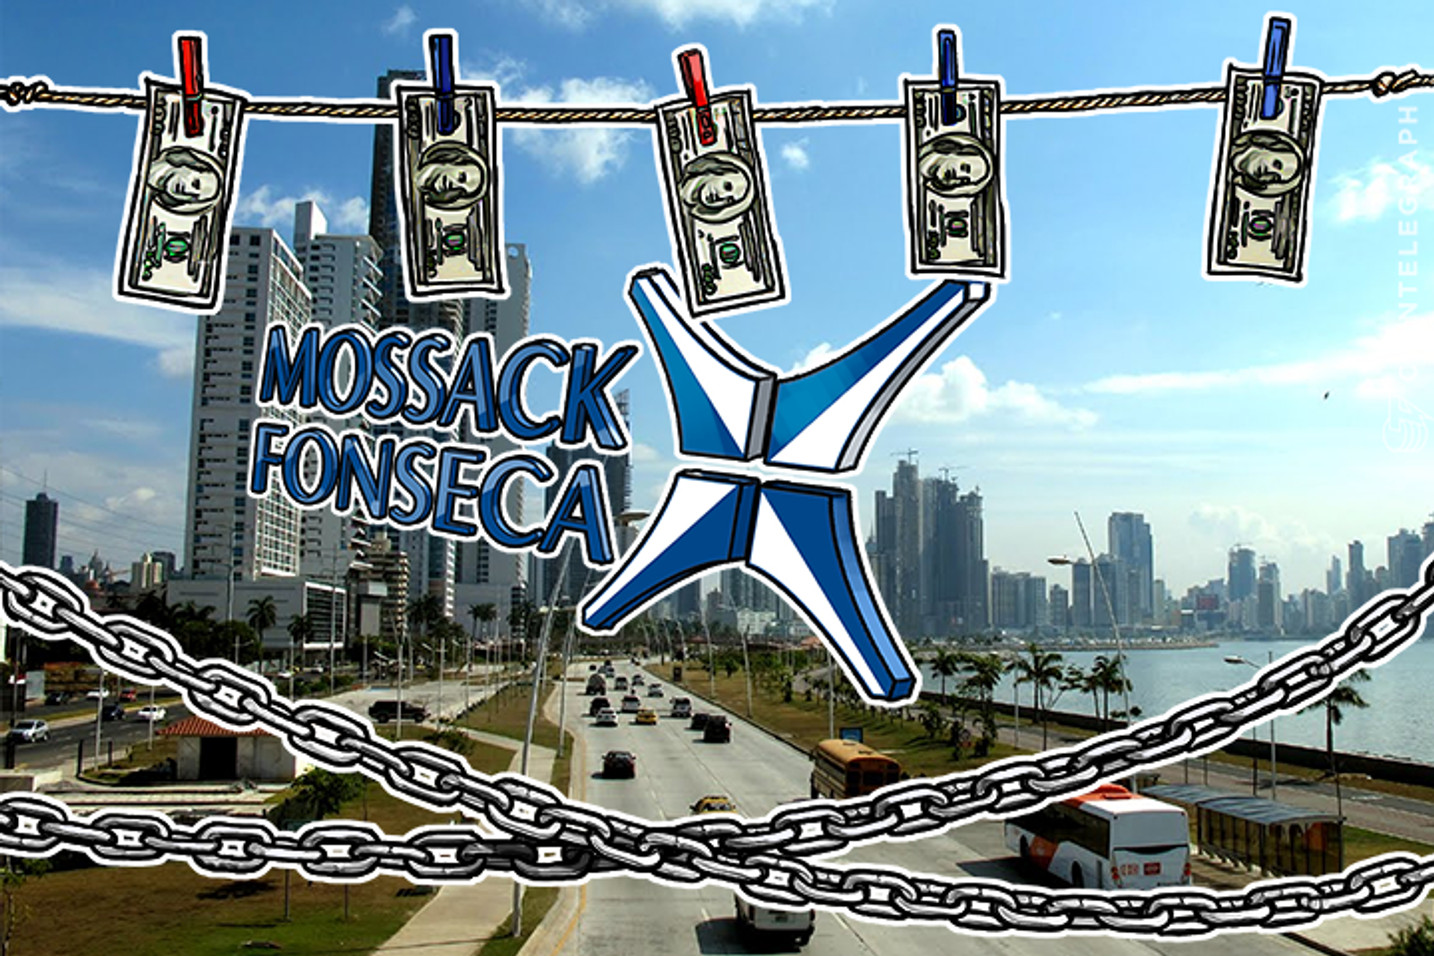 Panama Papers, Mossack Fonseca, and Money Laundering with Bitcoin?